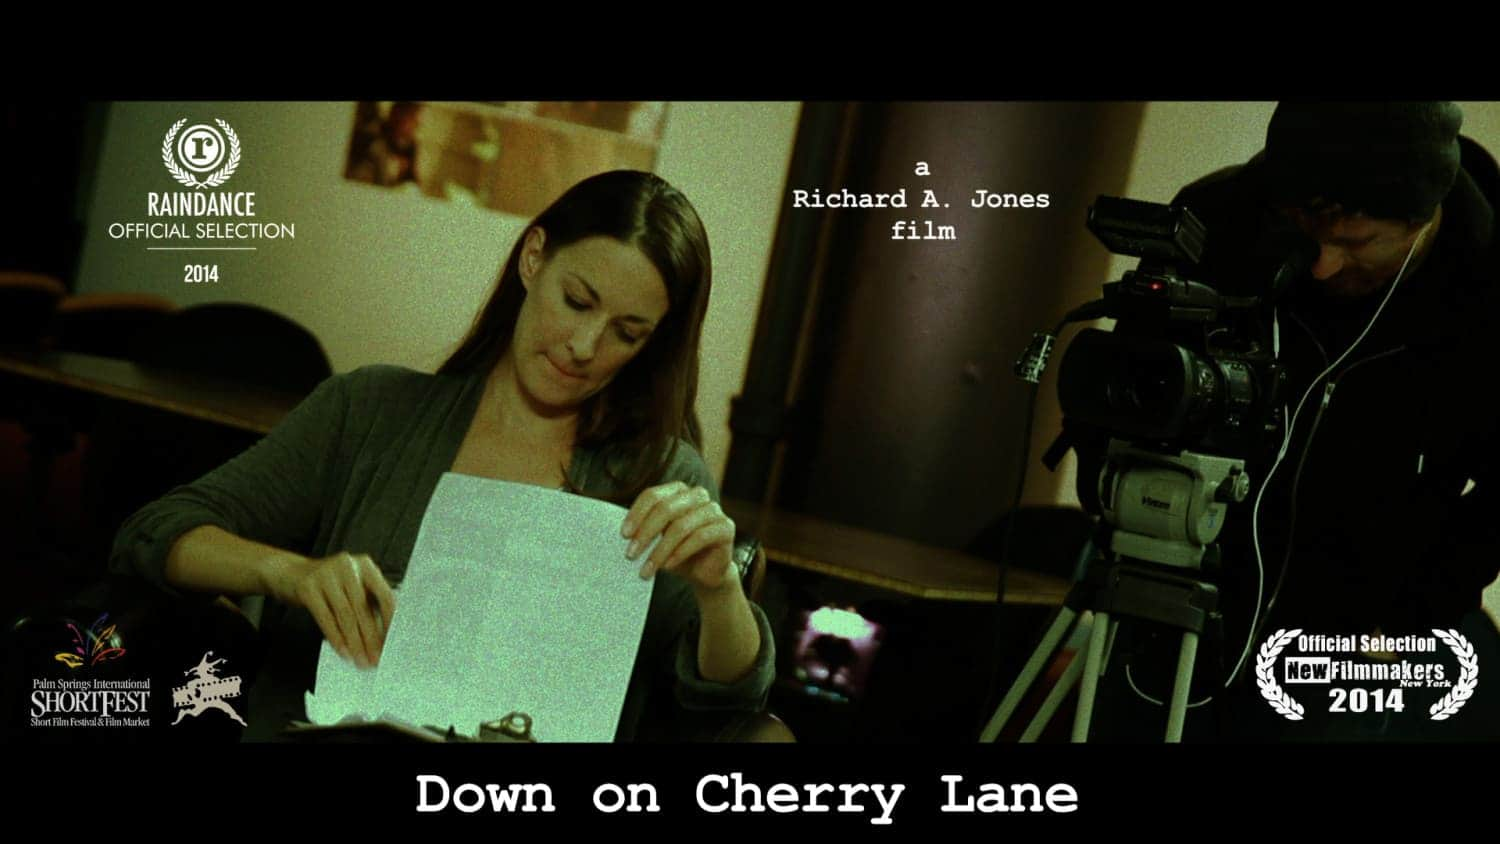 Down on Cherry Lane